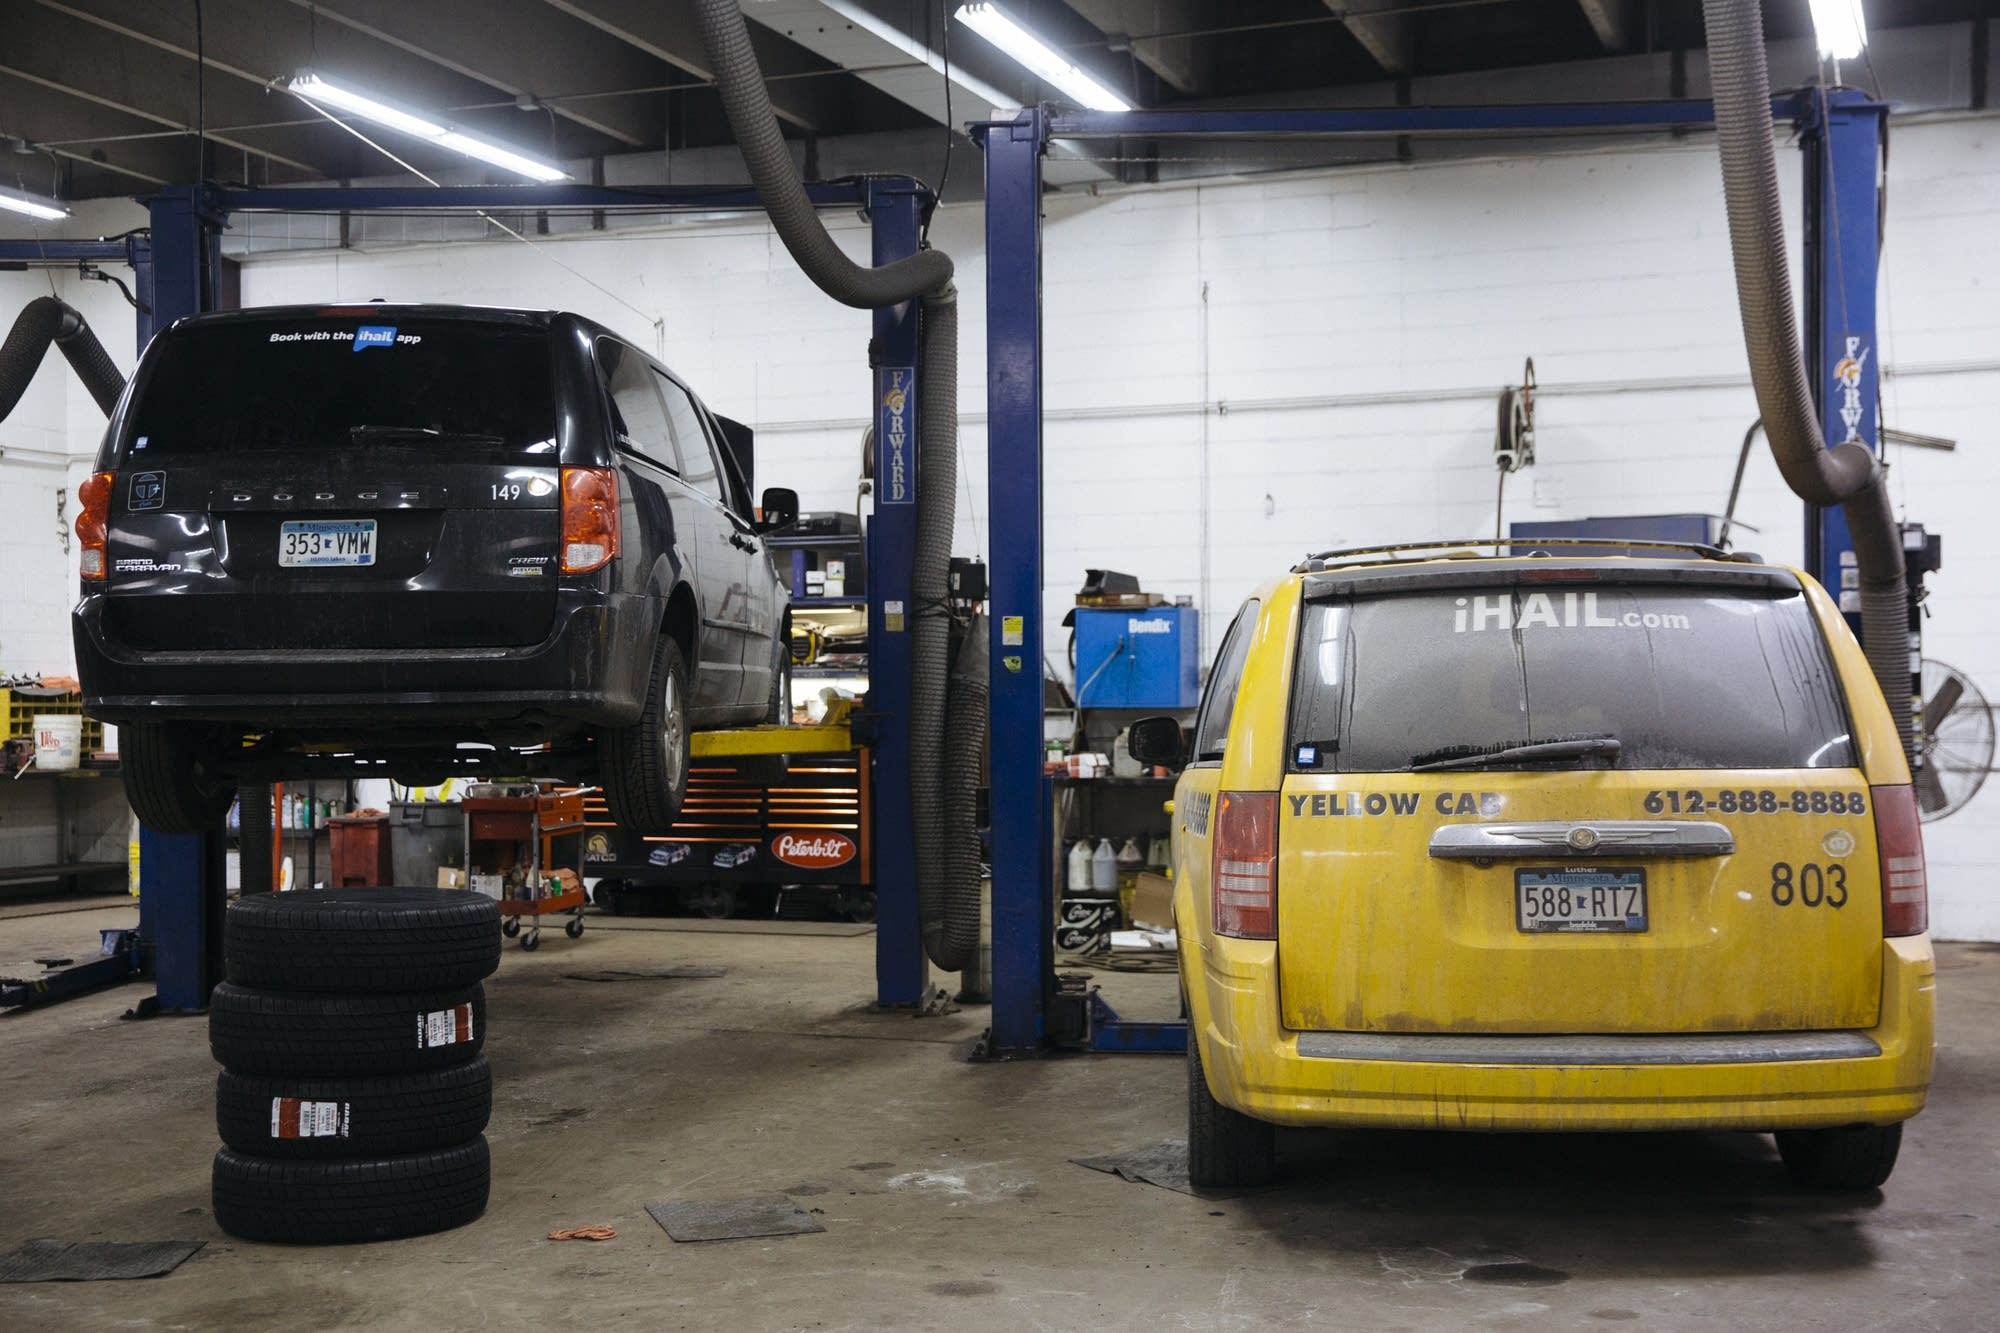 Two taxis are being worked on in the in shop of Taxi Services.